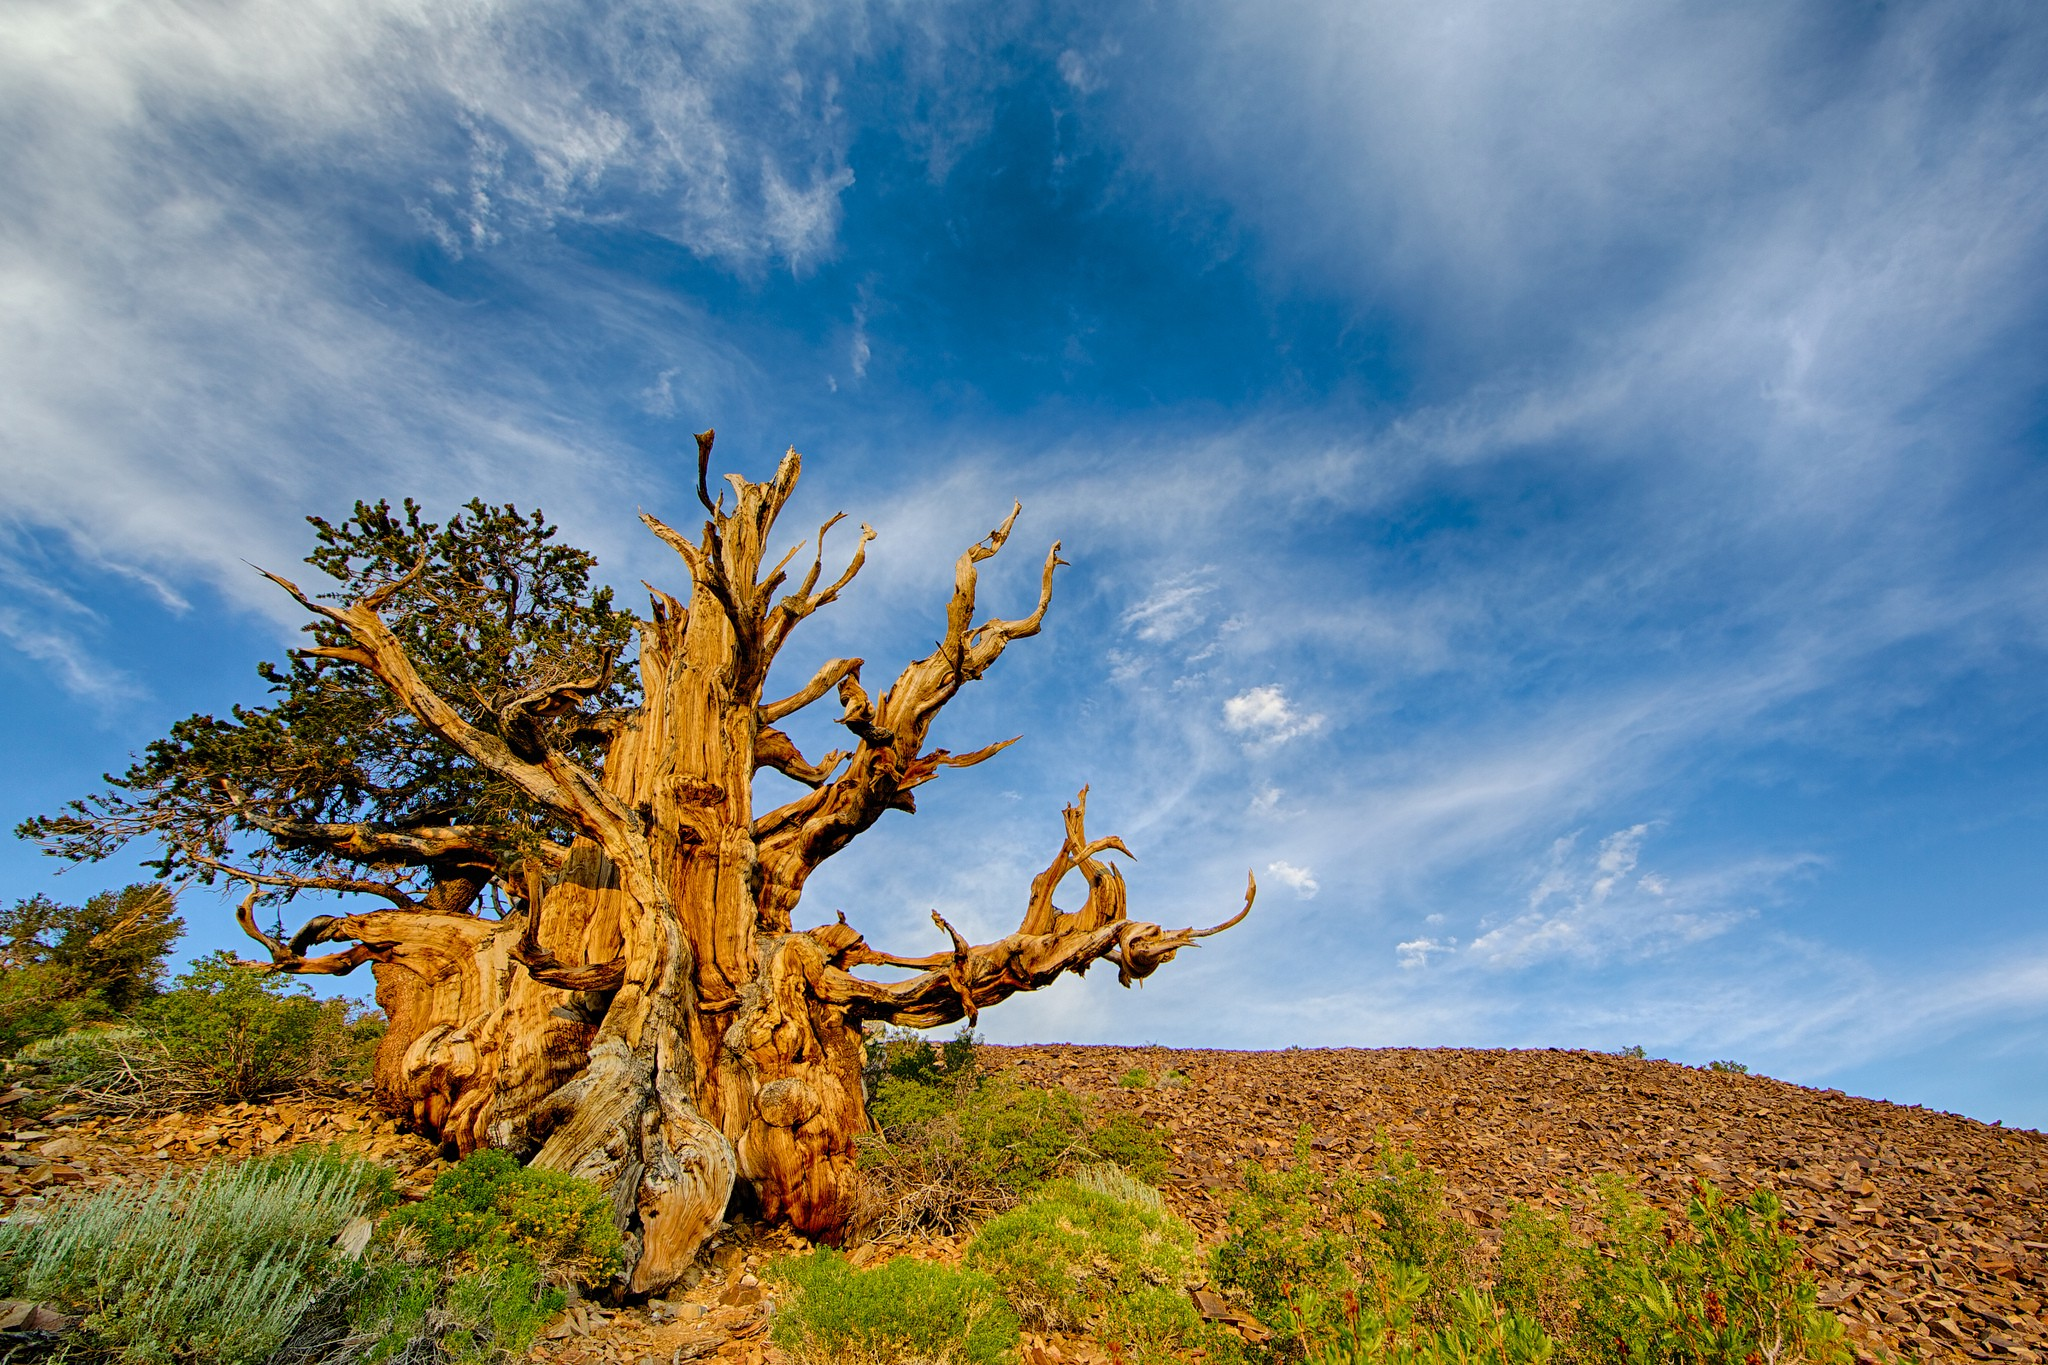 The 5 Strange Trees, which the wonders of Nature in the World.